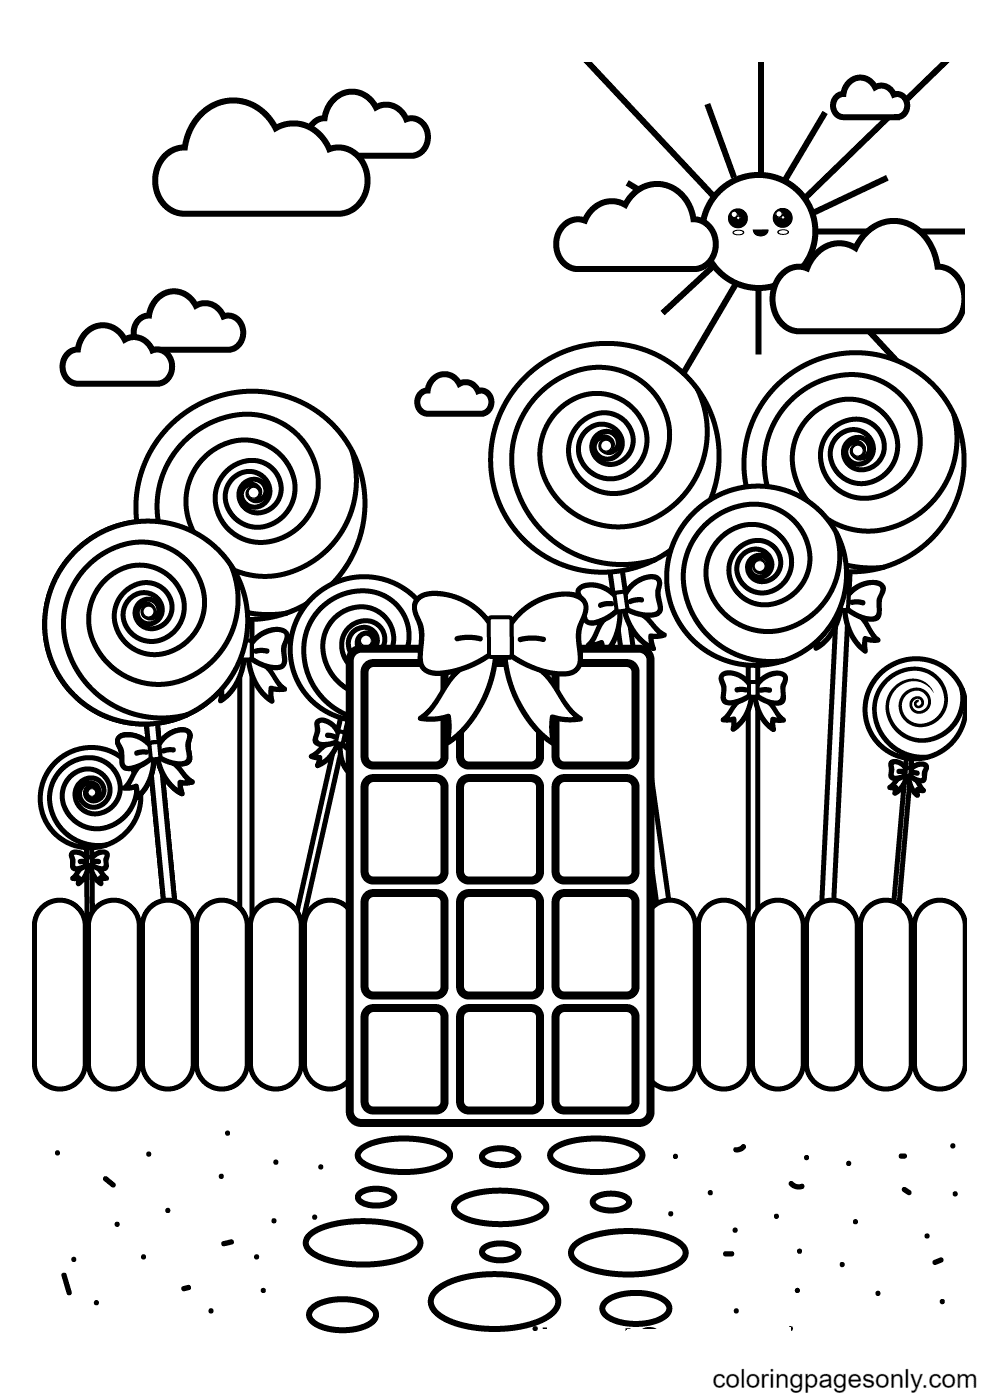 Candy Wonderland Coloring Page